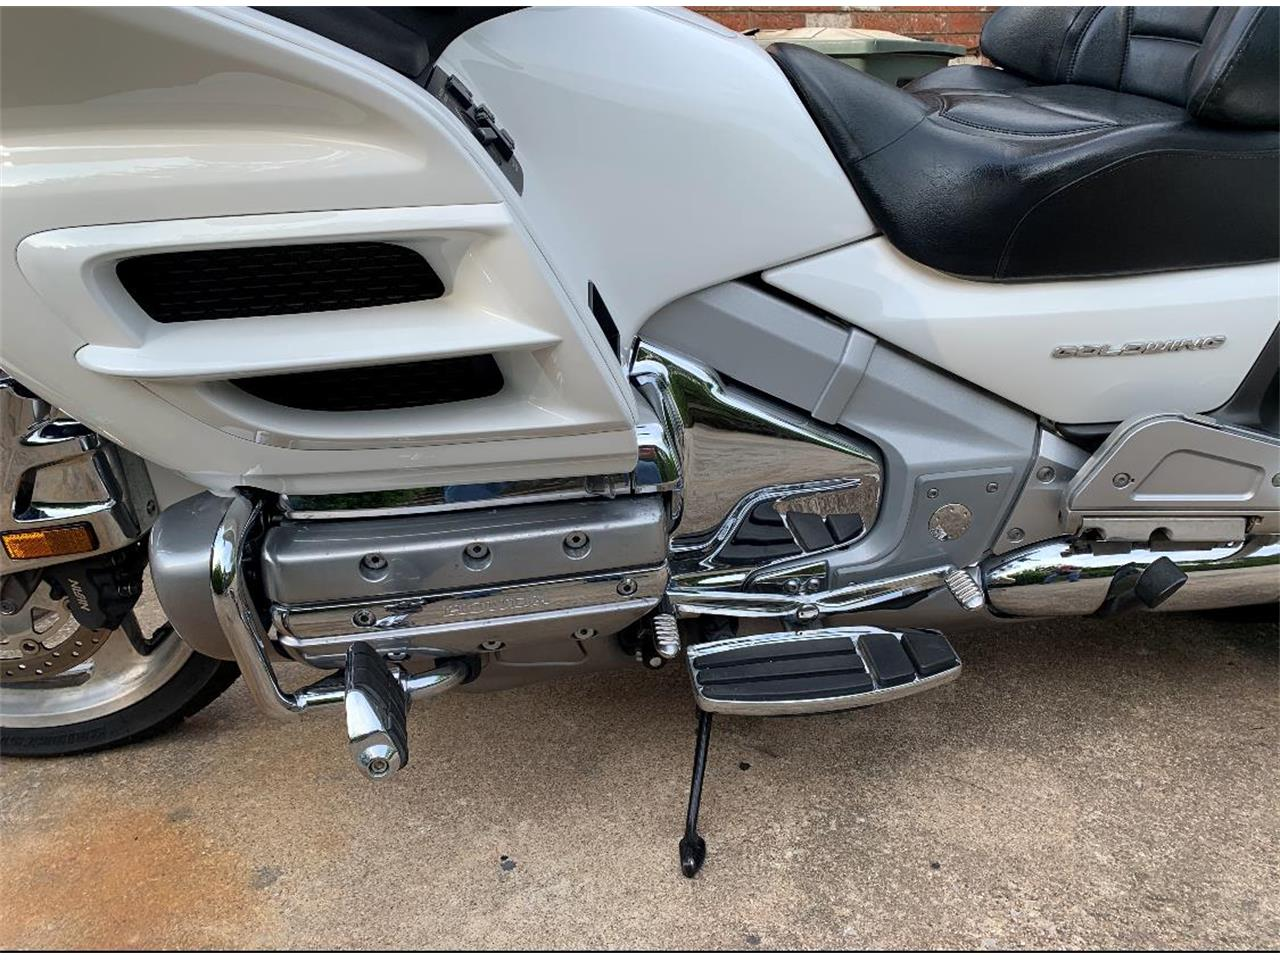 2006 Honda Goldwing (CC-1354644) for sale in Shawnee, Oklahoma